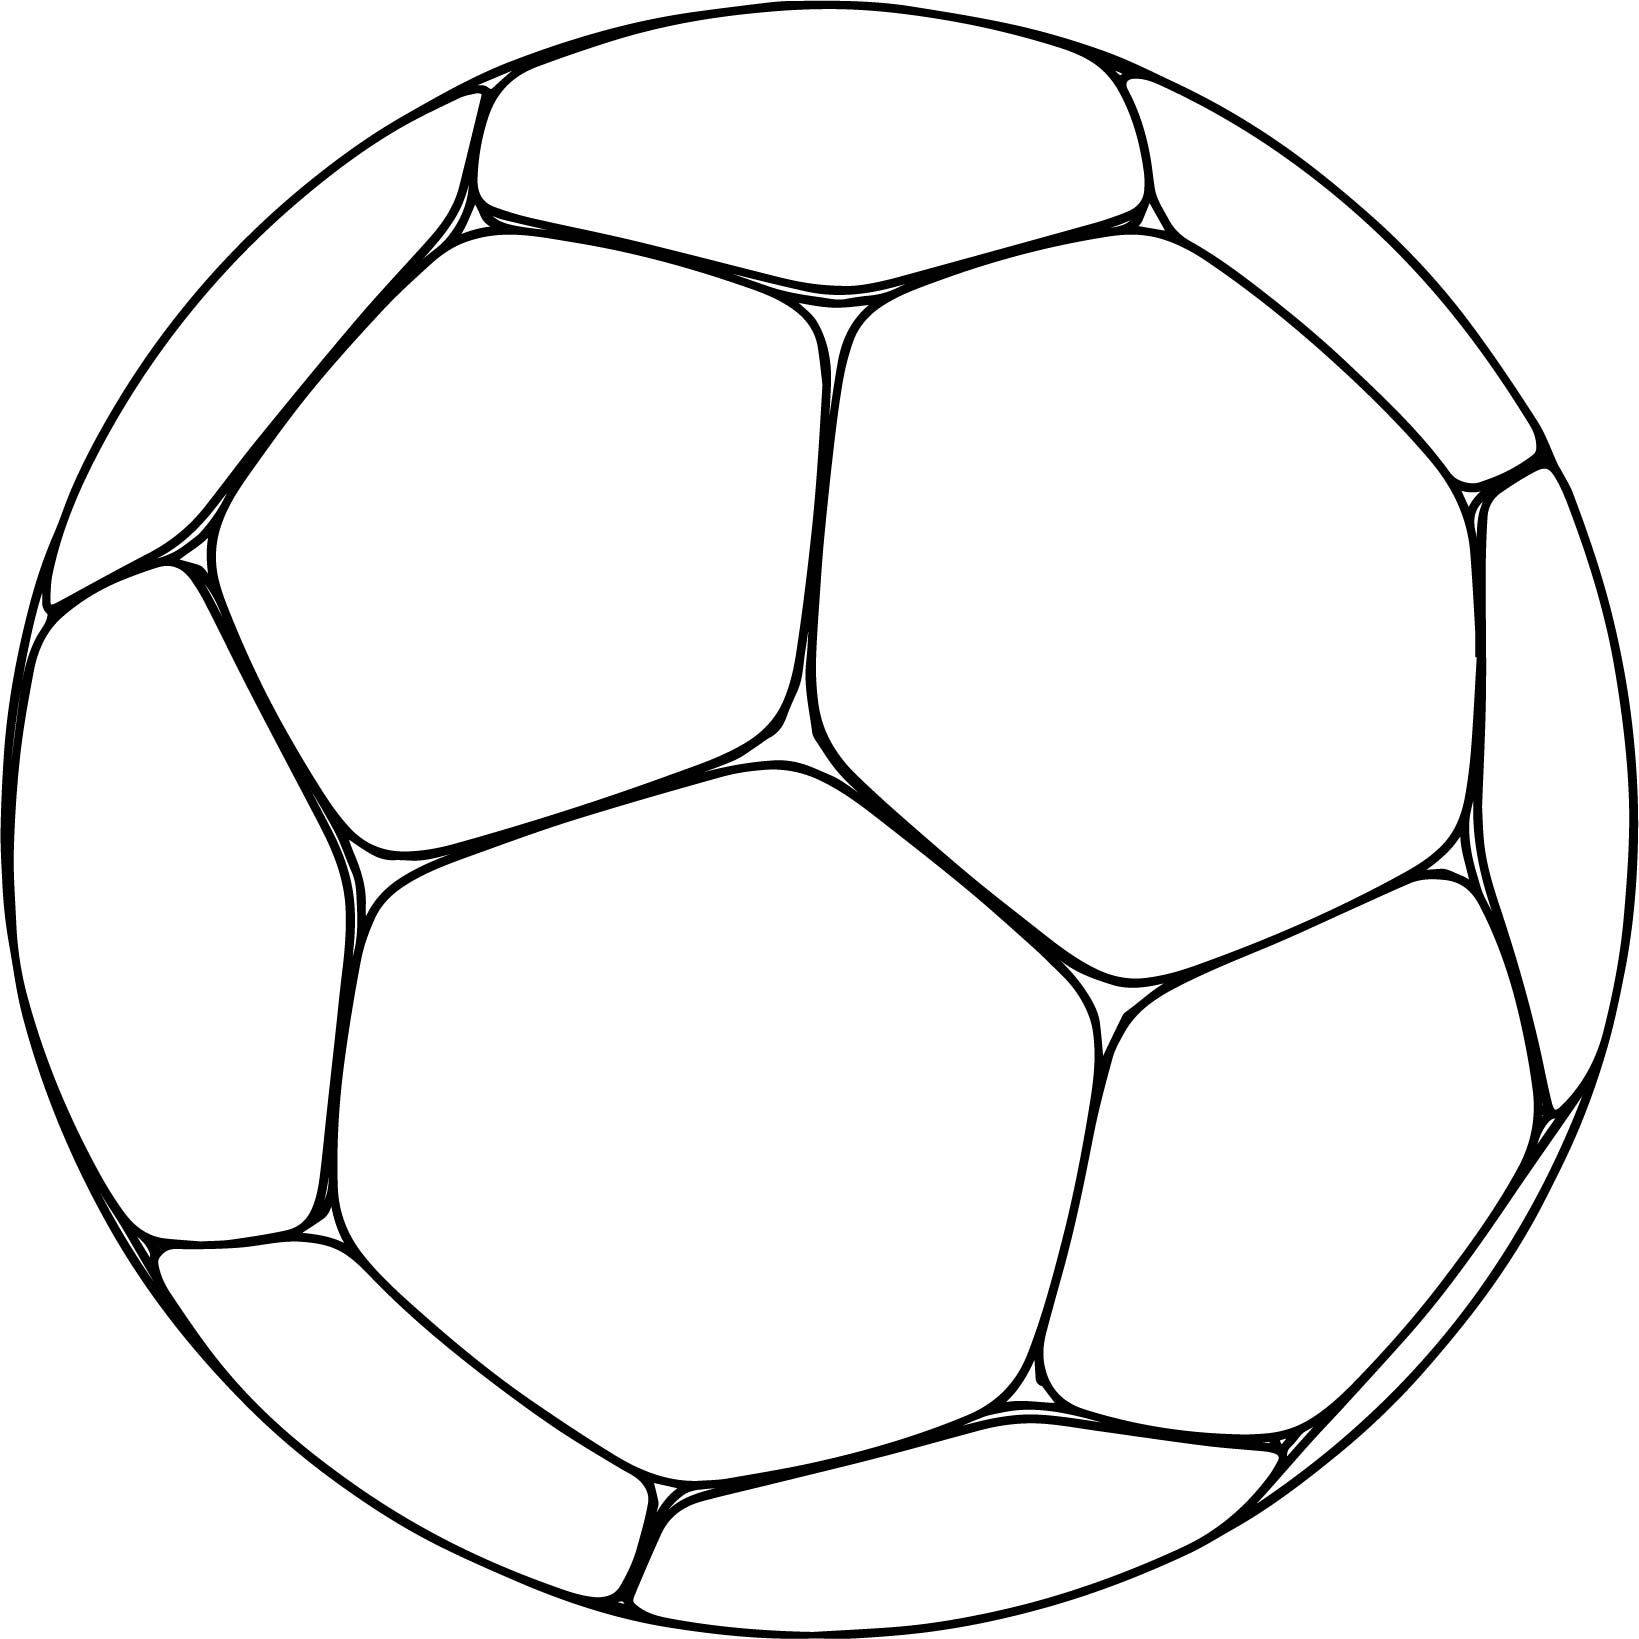 Soccer Cleats Coloring Pages In 2020 Soccer Ball Football Coloring Pages Soccer